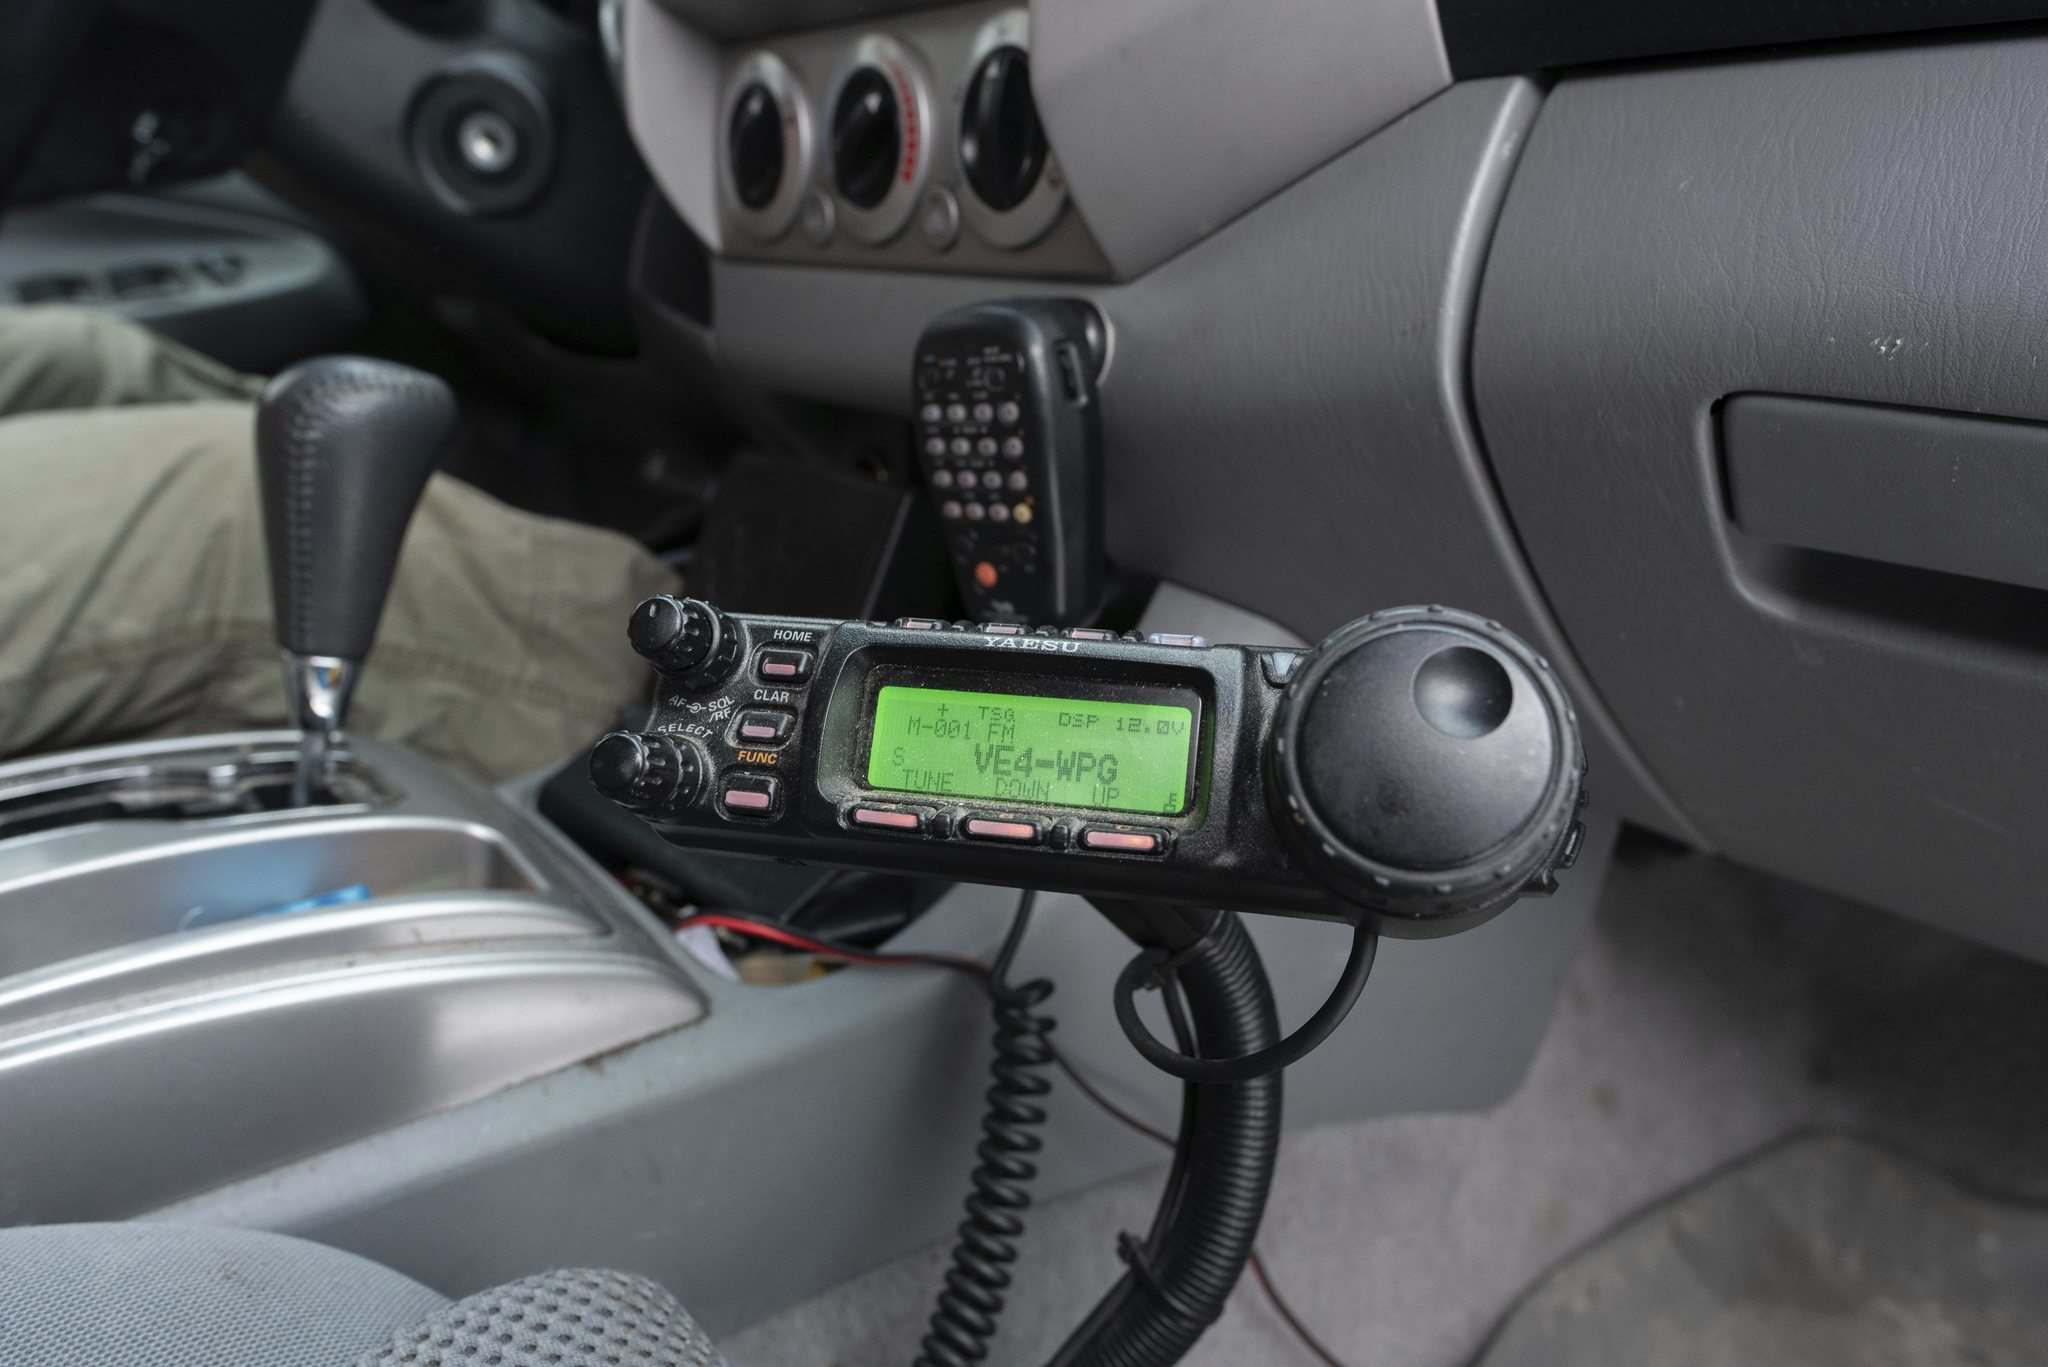 The radio in Leor Drory's truck is capable of both worldwide and local communications, which typically use different frequencies.